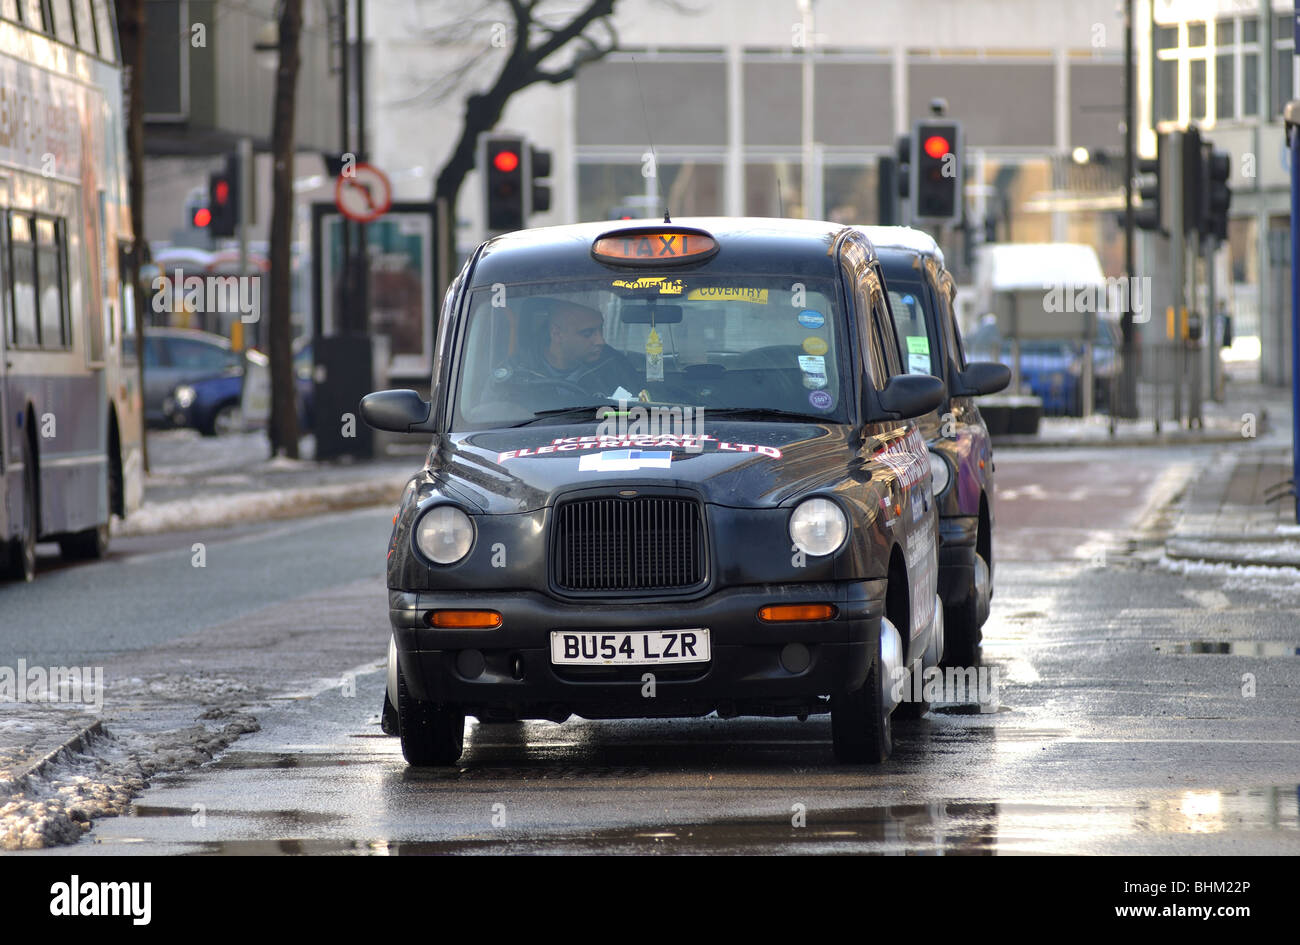 Taxi in Coventry city centre in winter, England, UK - Stock Image